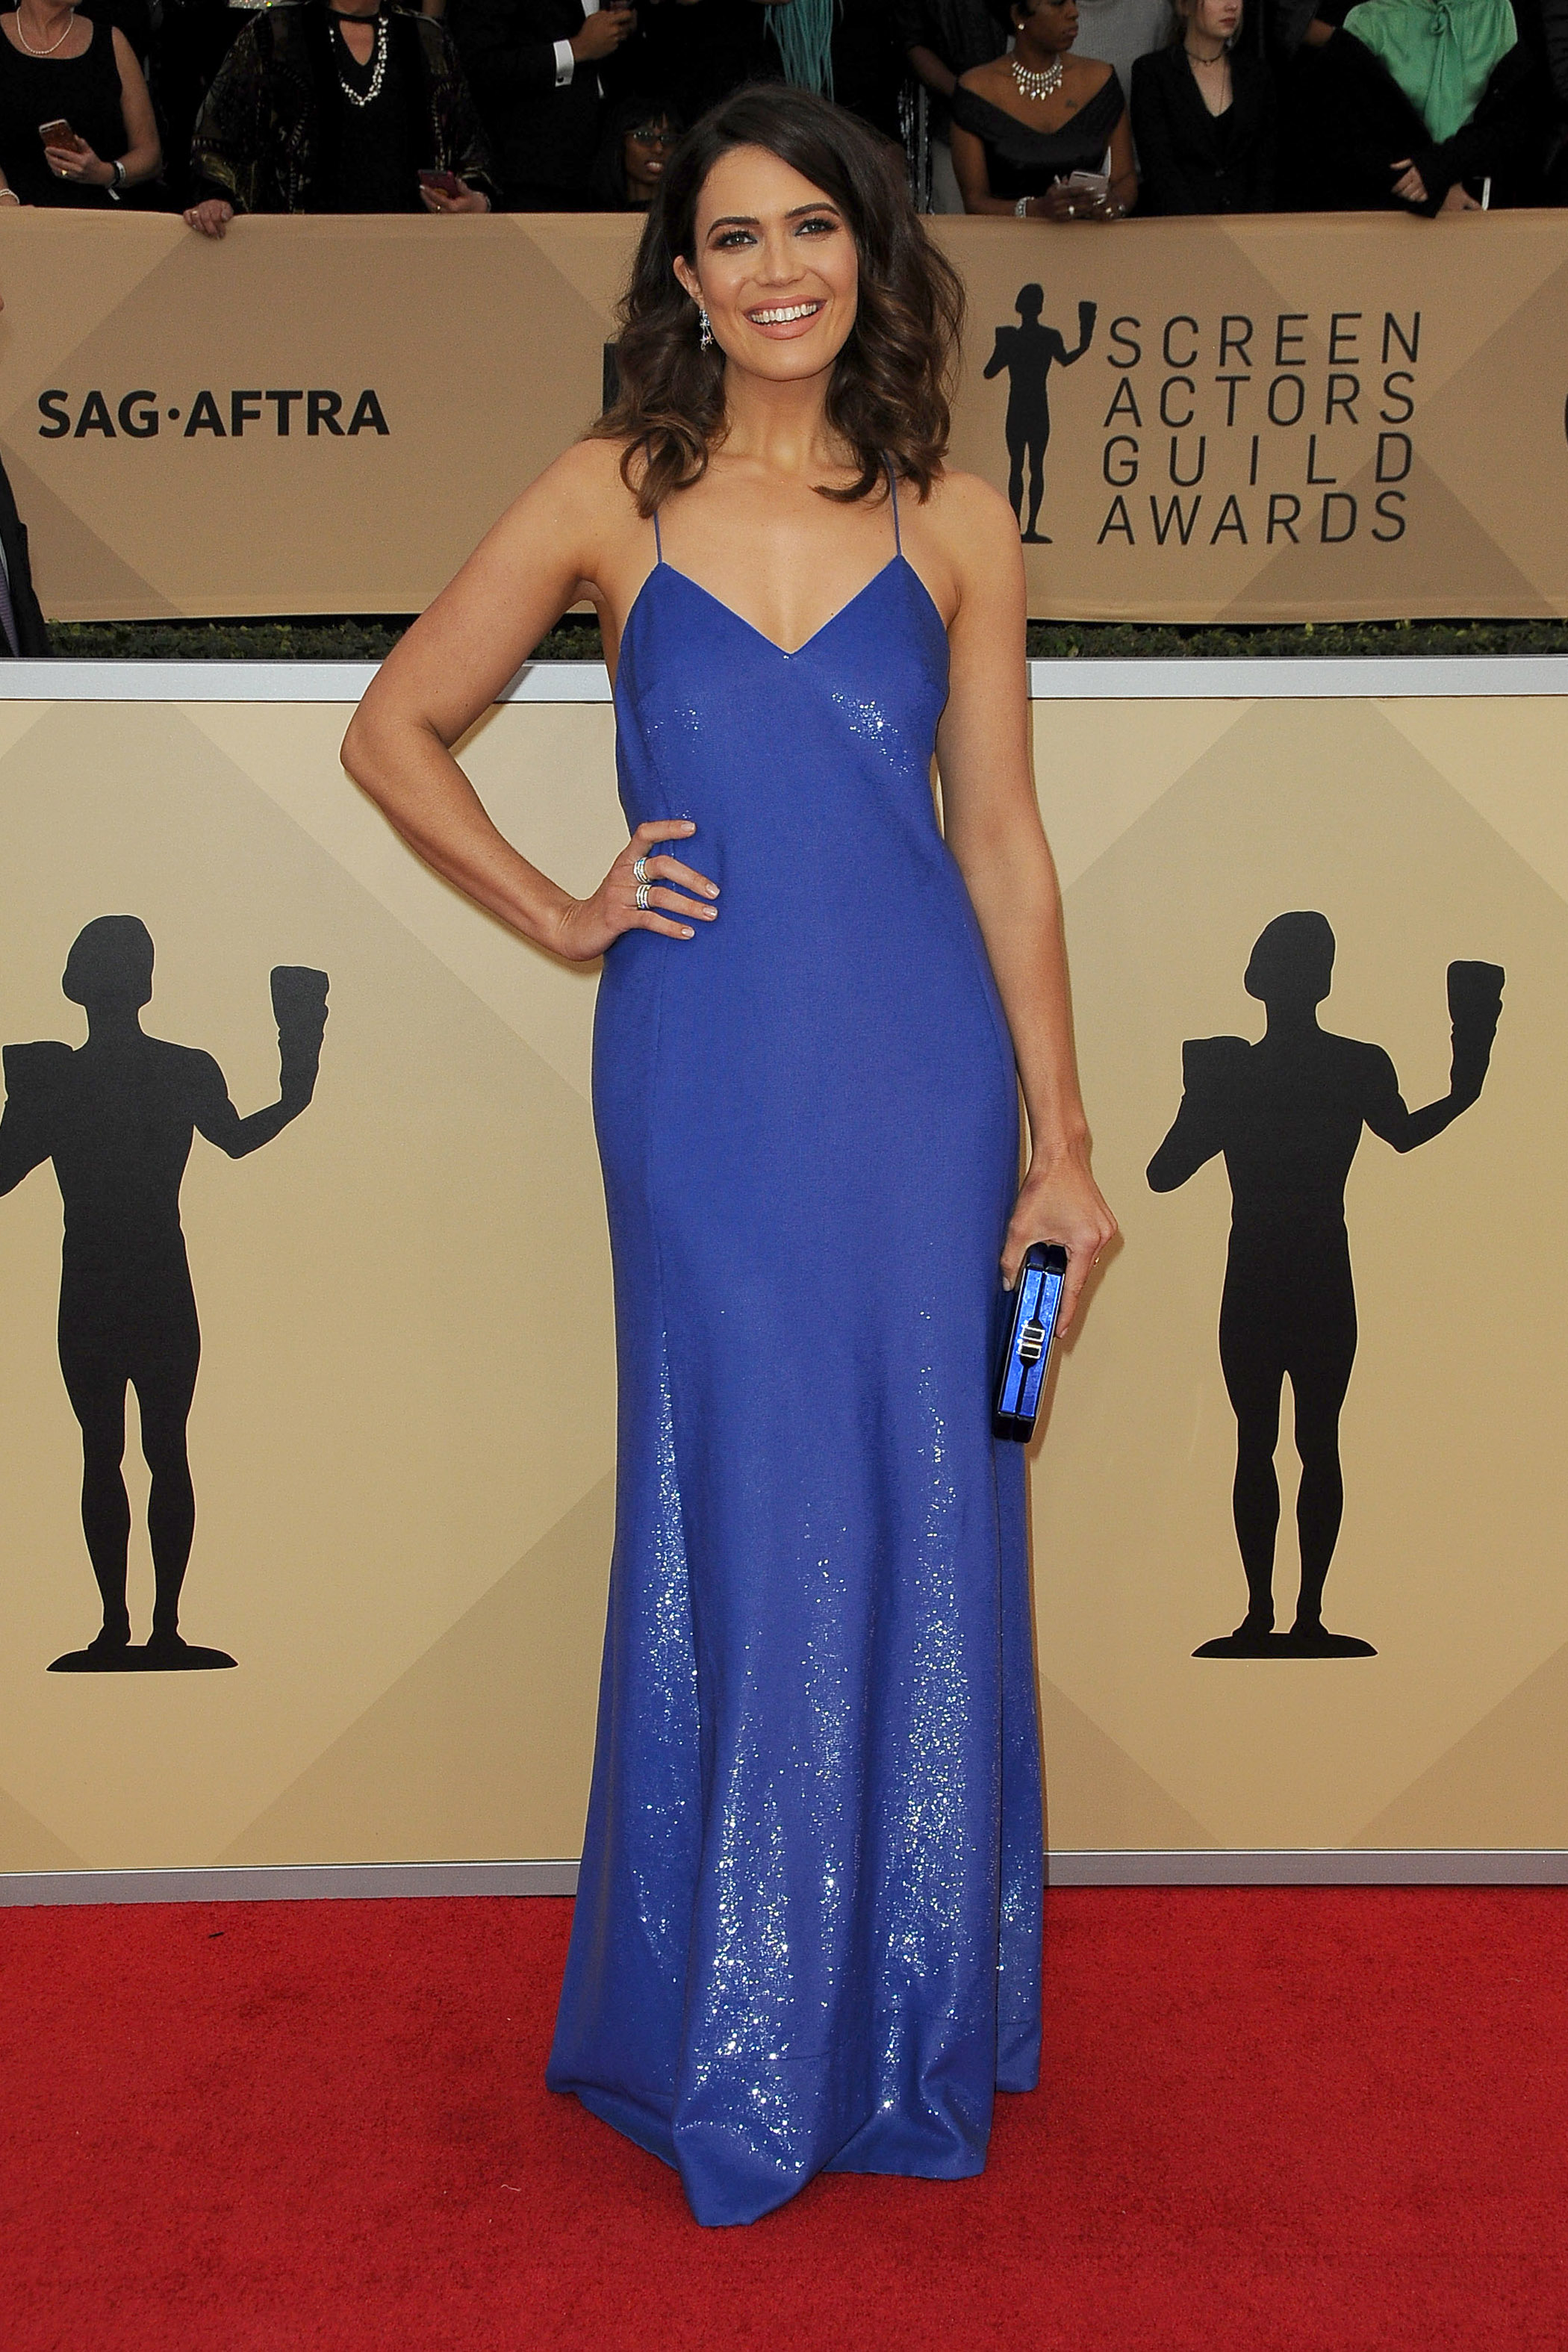 Arrivals for the 24th Annual Screen Actors Guild Awards, held at the Shrine Exposition Center in Los Angeles, California <P> Pictured: Mandy Moore <B>Ref: SPL1649120  210118  </B><BR/> Picture by: Splash News<BR/> </P><P> <B>Splash News and Pictures</B><BR/> Los Angeles:	310-821-2666<BR/> New York:	212-619-2666<BR/> London:	870-934-2666<BR/> <span id=